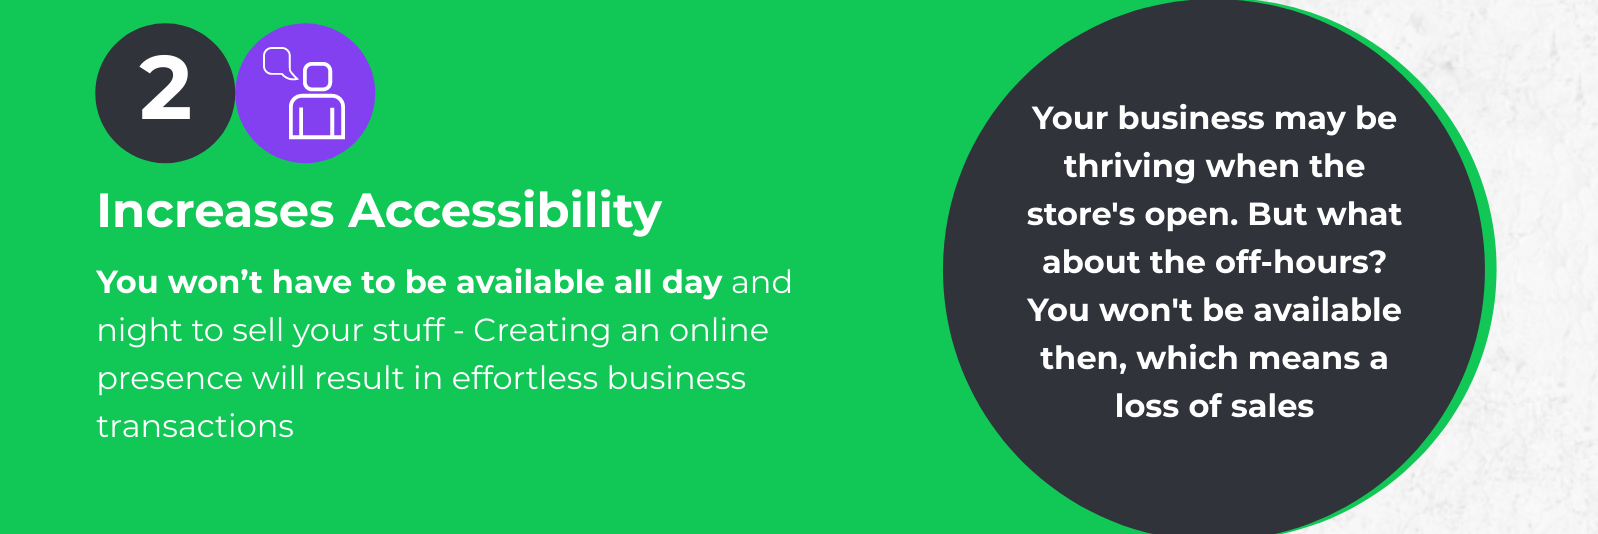 Increase accessibility by ecommerce